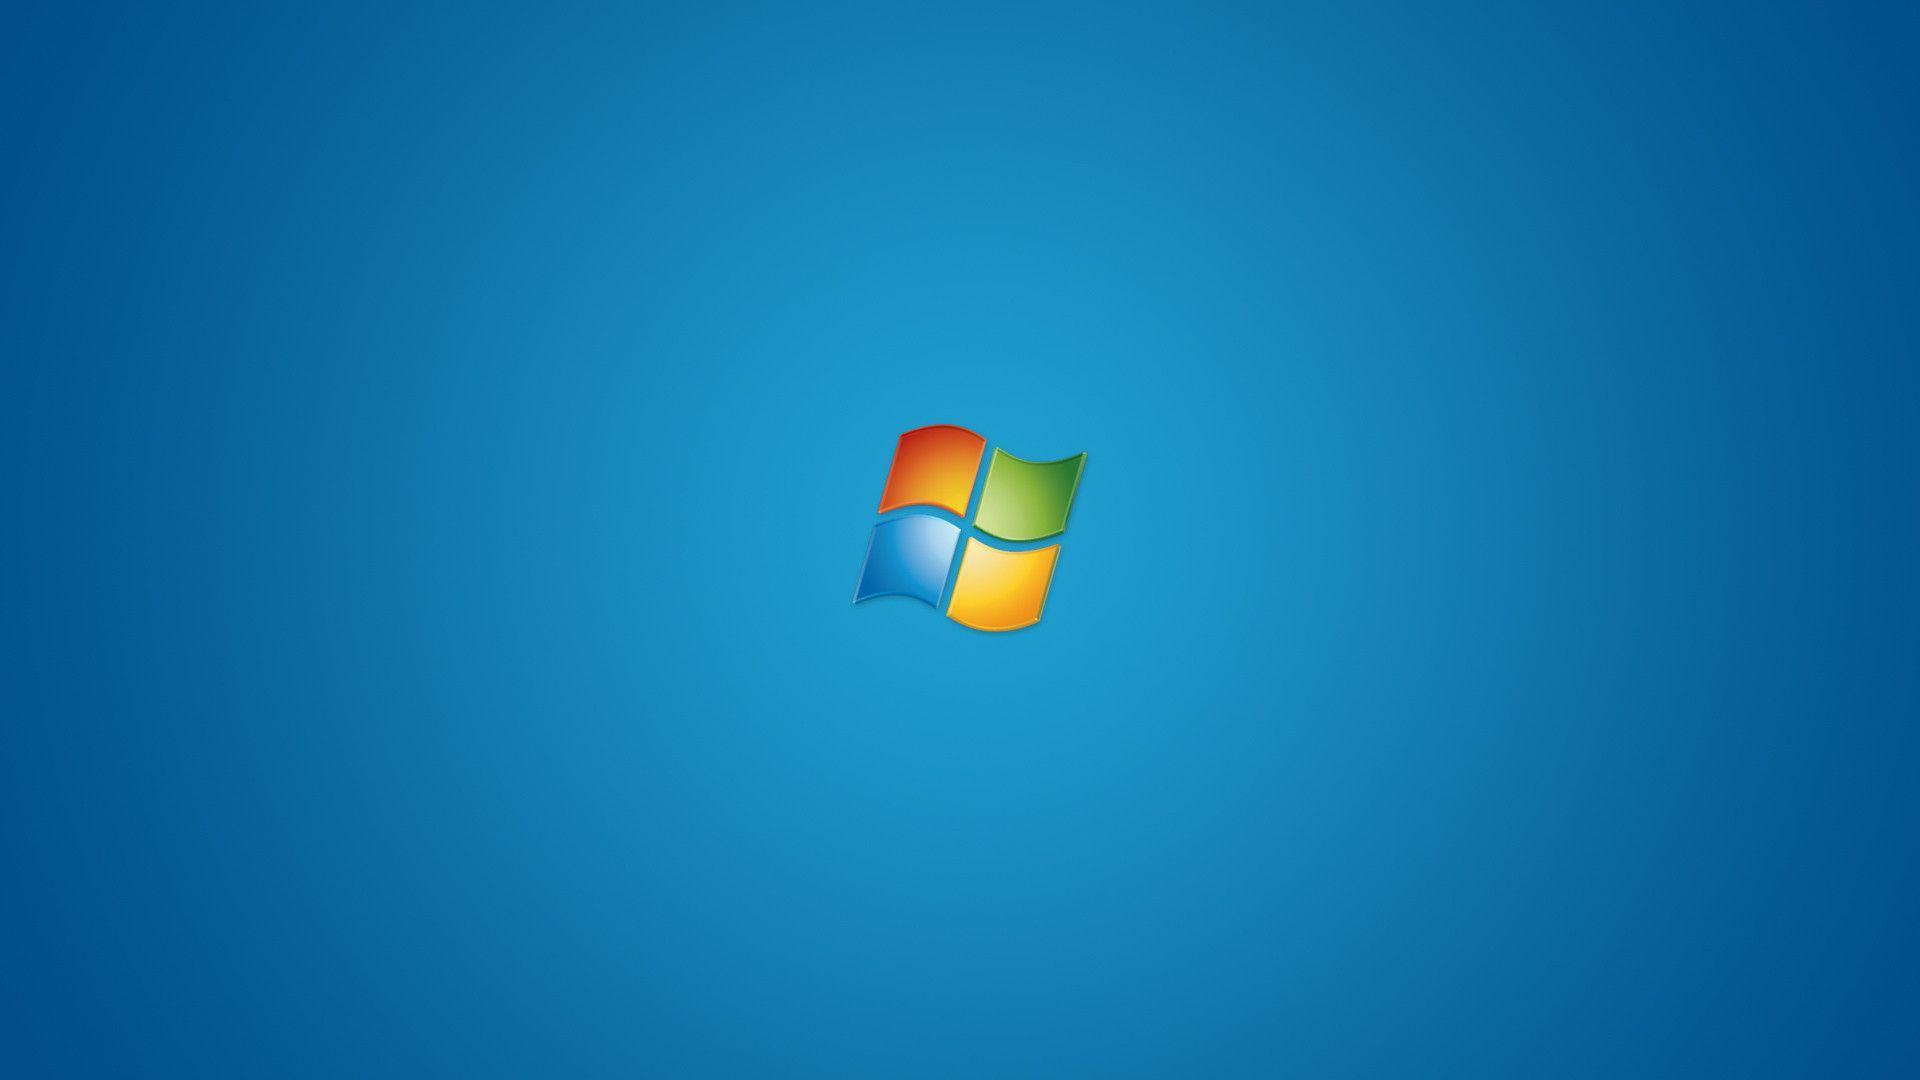 Microsoft Desktop Wallpapers 1920x1080